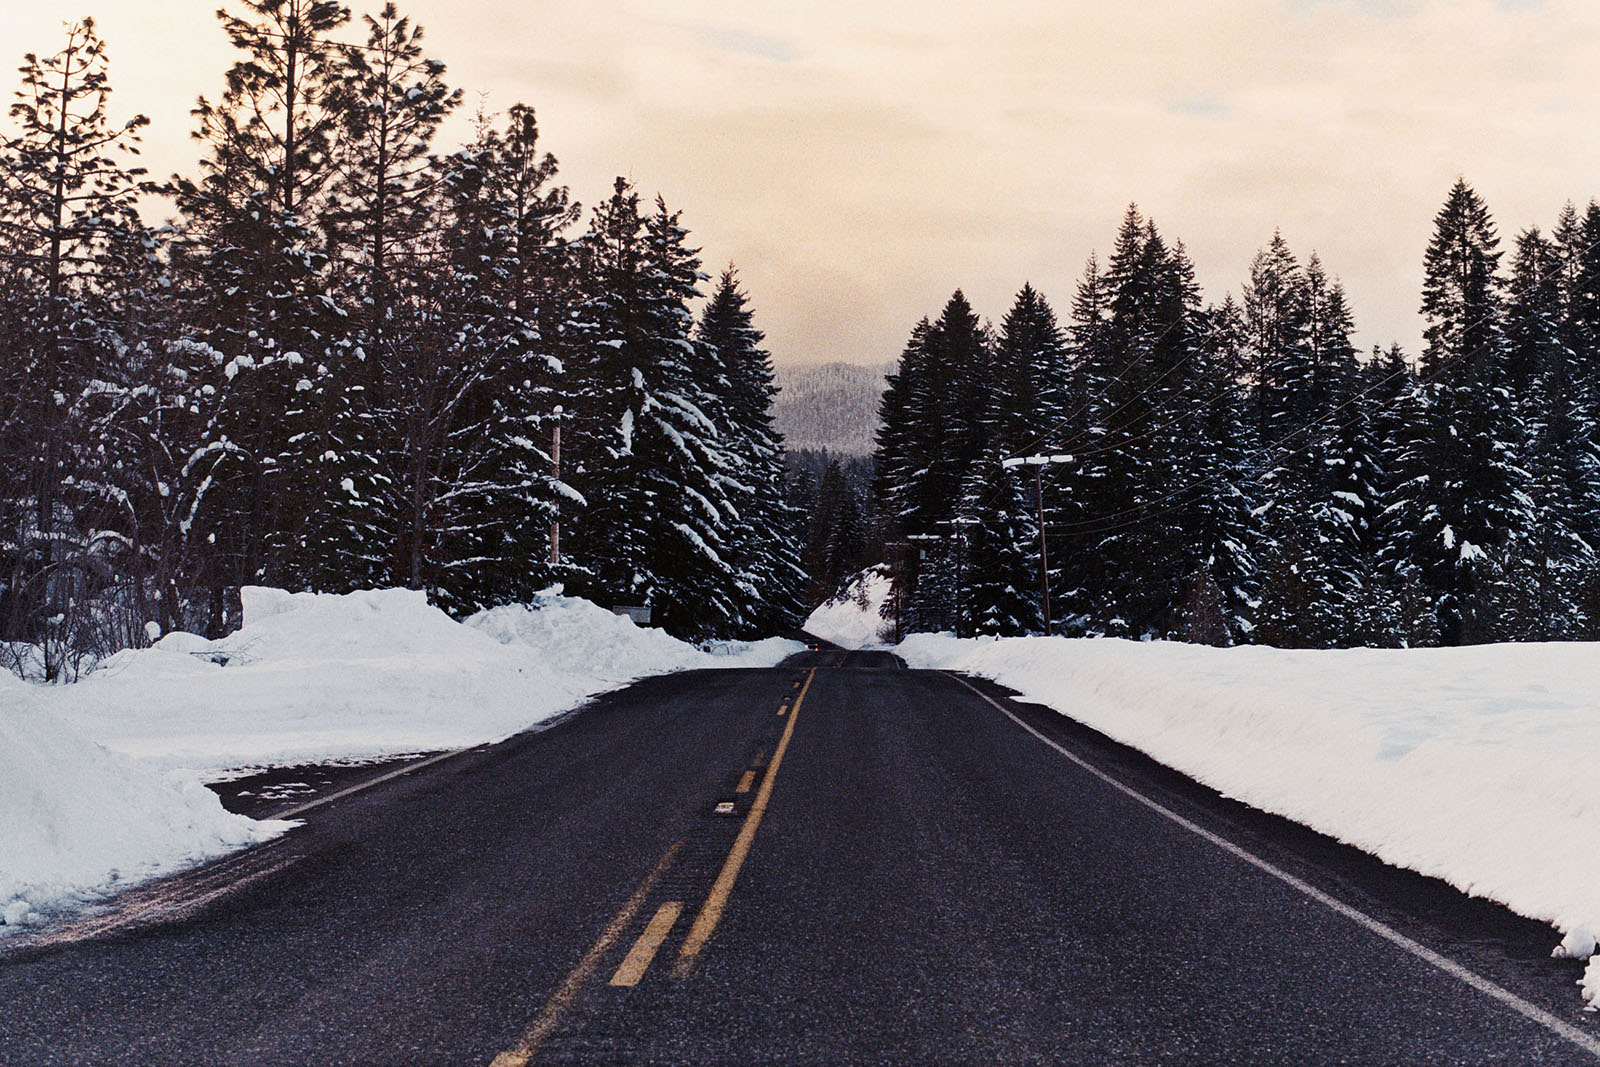 Driving to Trout Lake, WA | Contax Aria